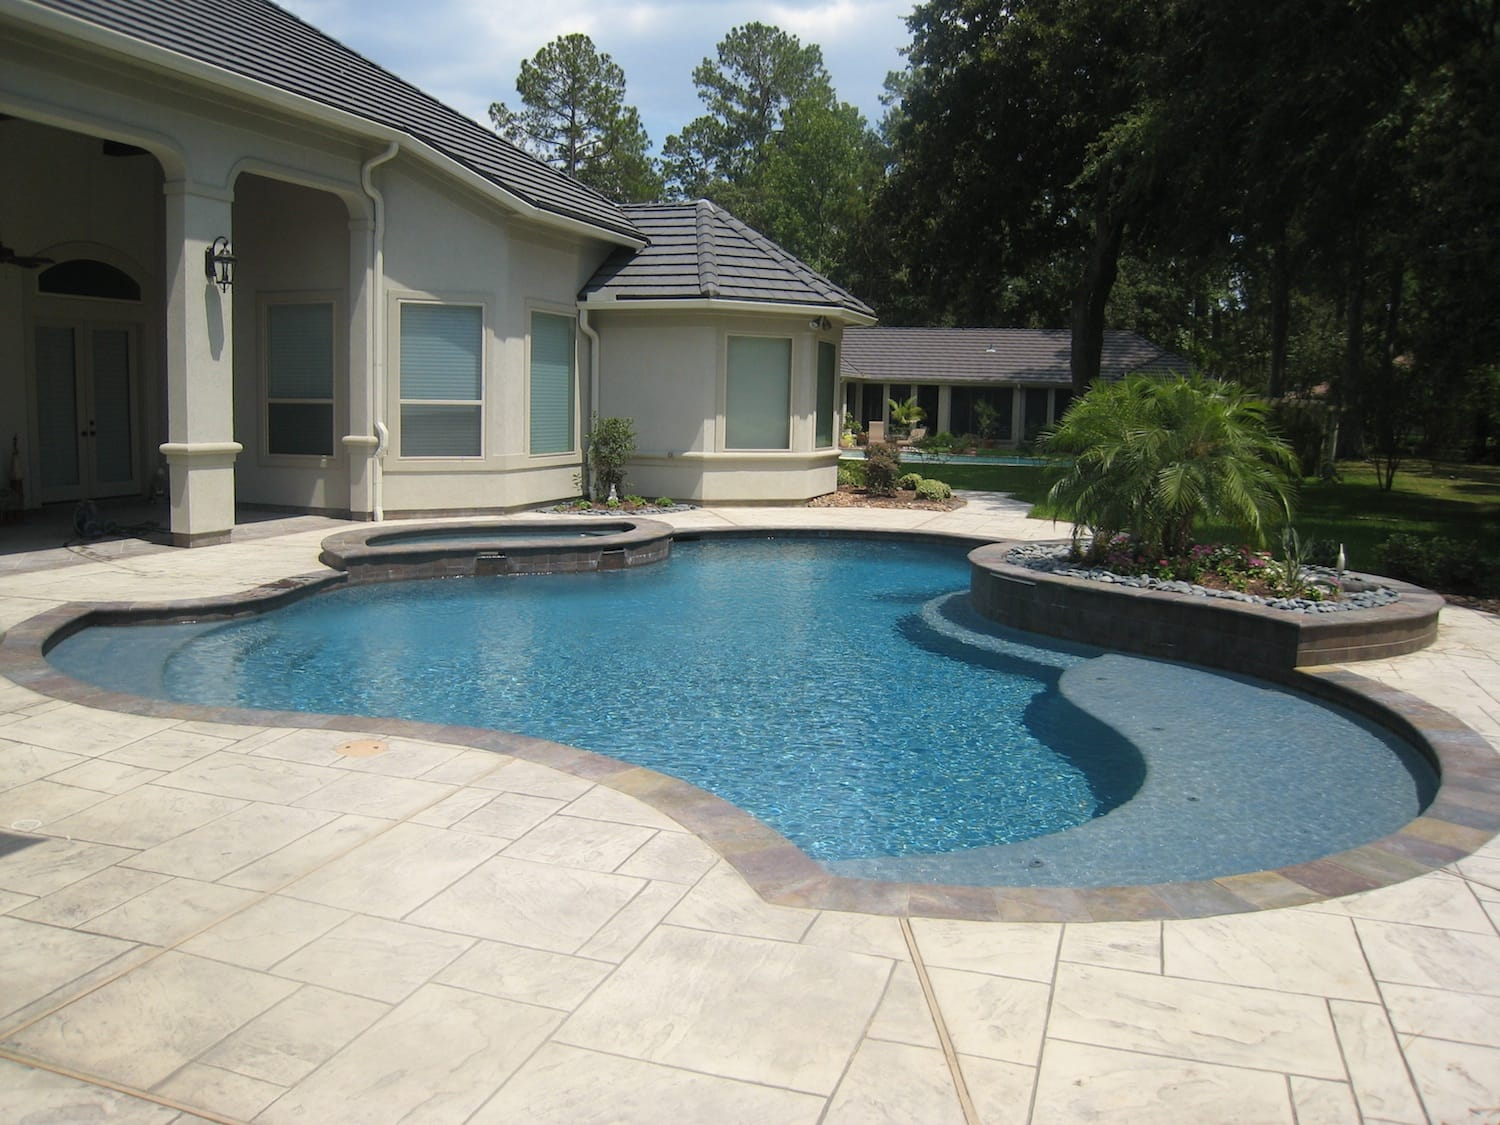 satin-matrix-antigua-pool-finish-15